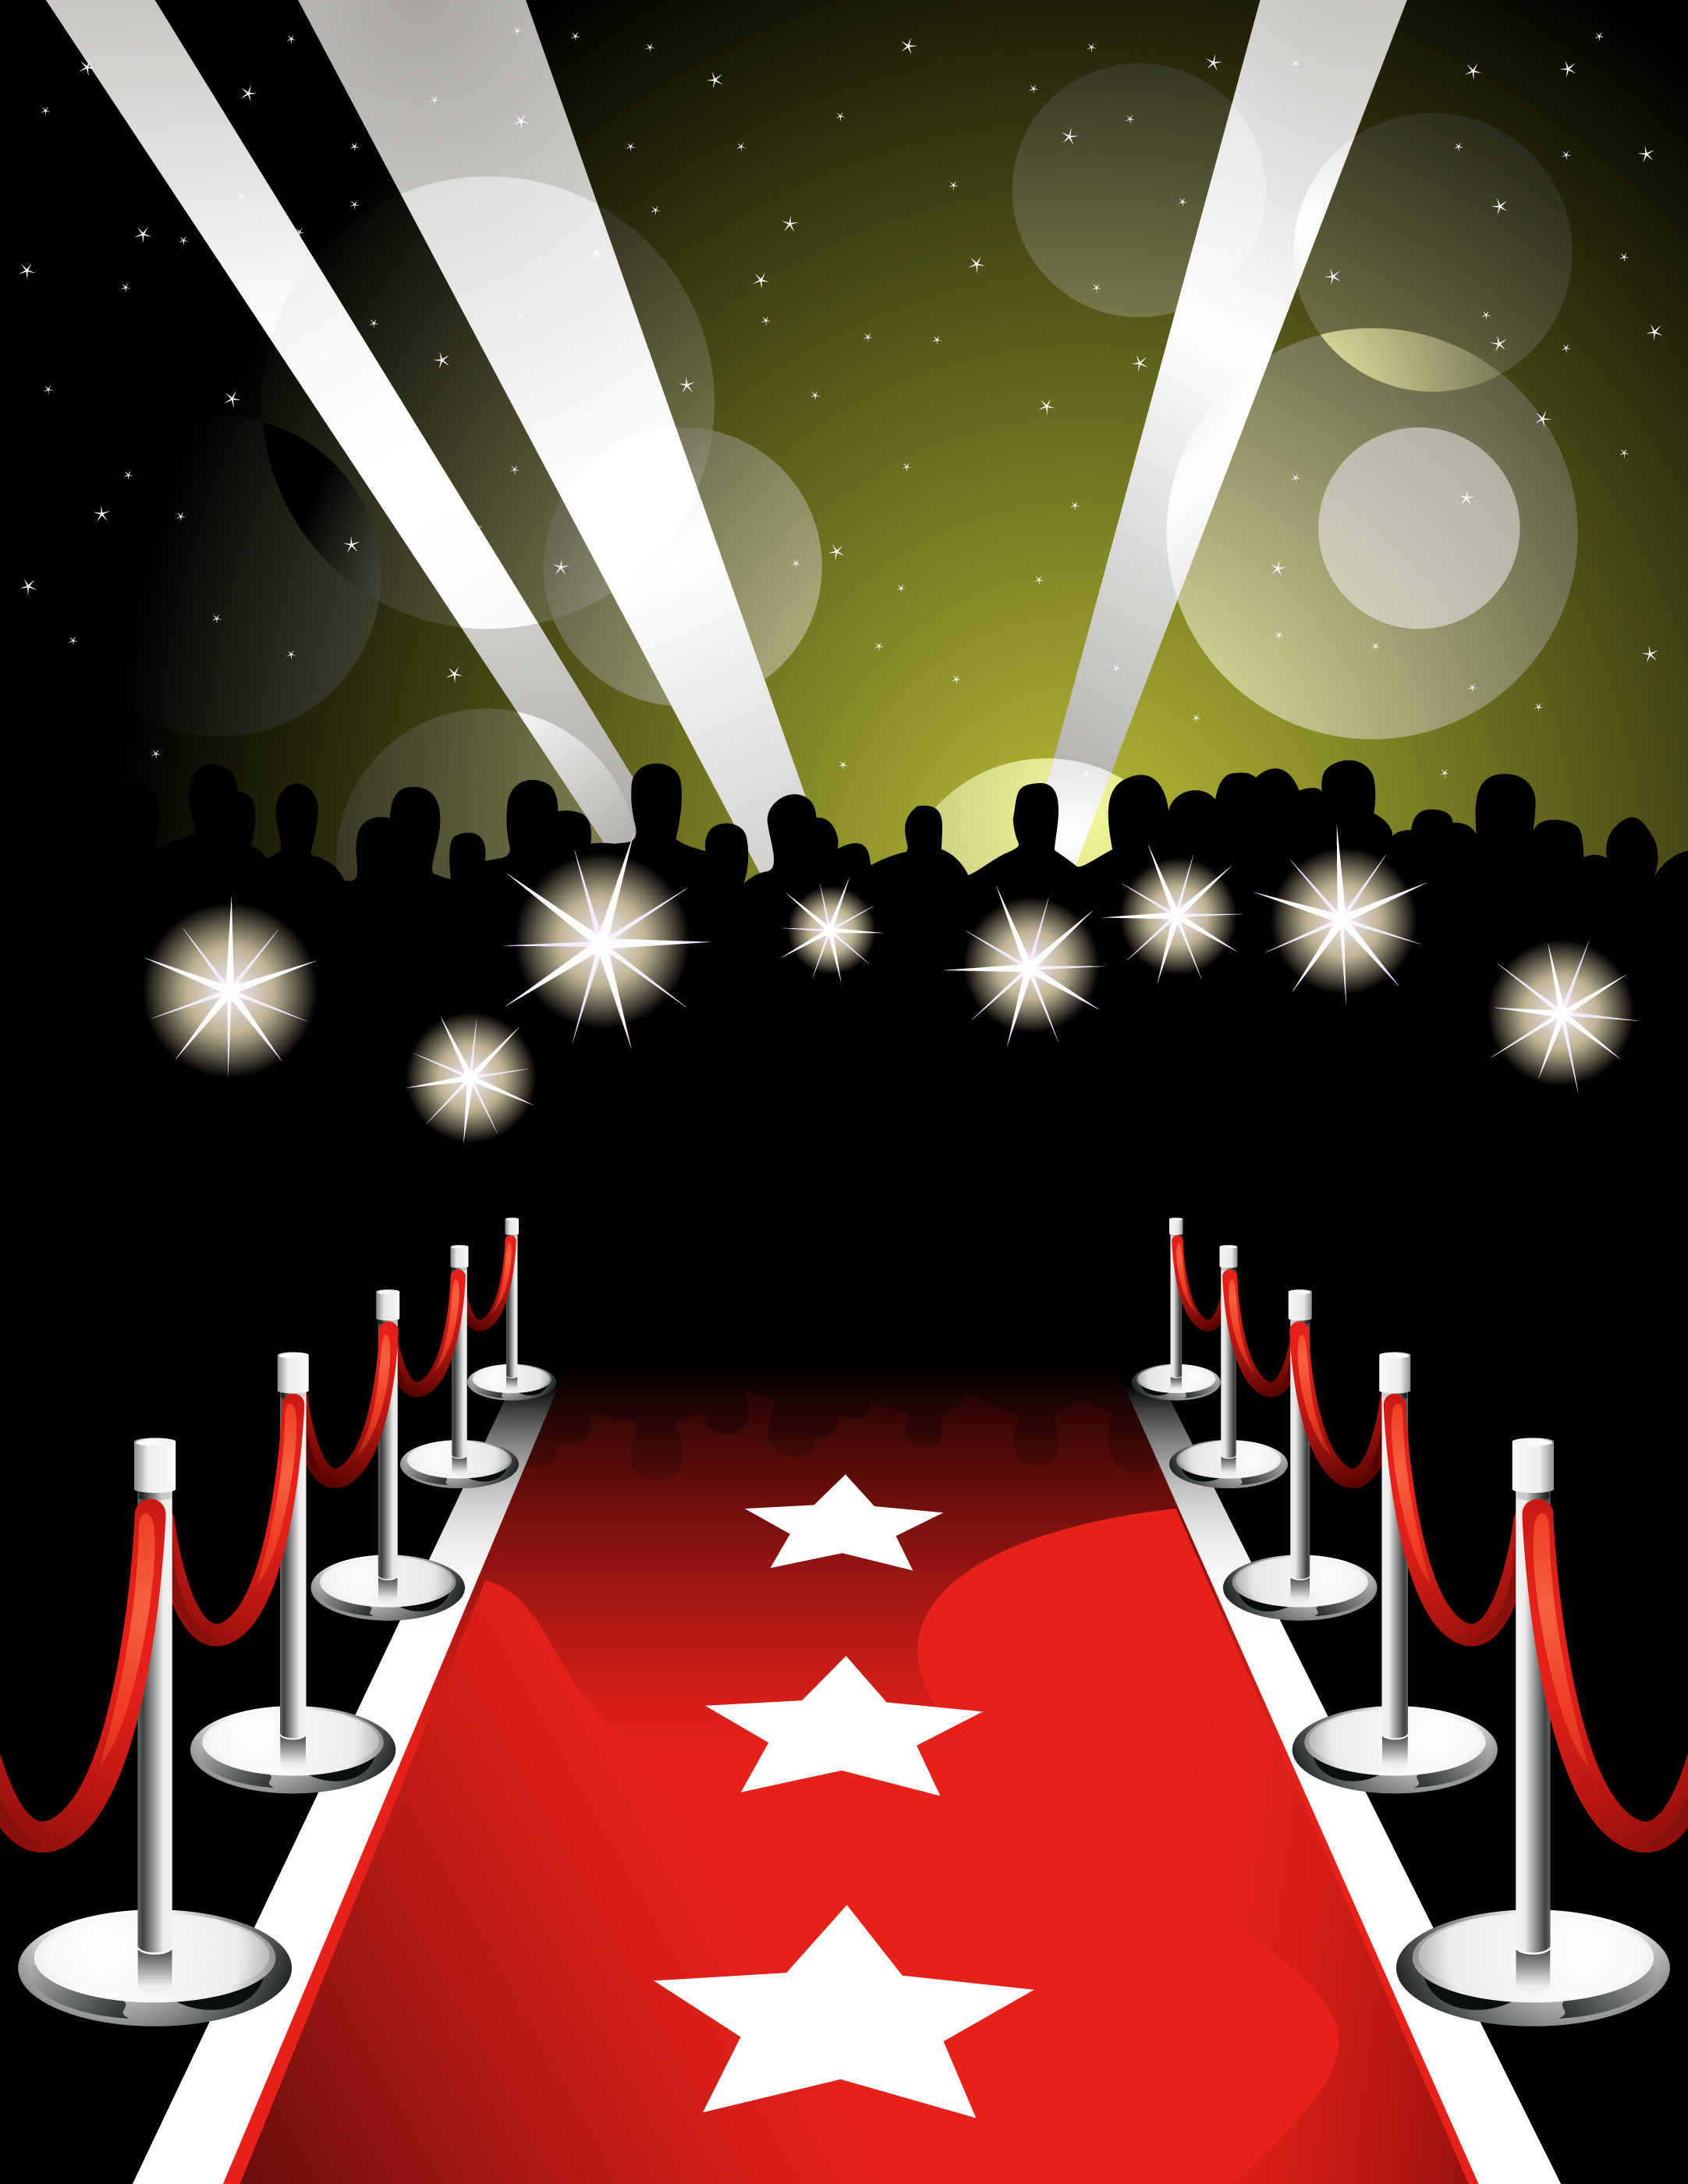 Red Carpet Clip Art